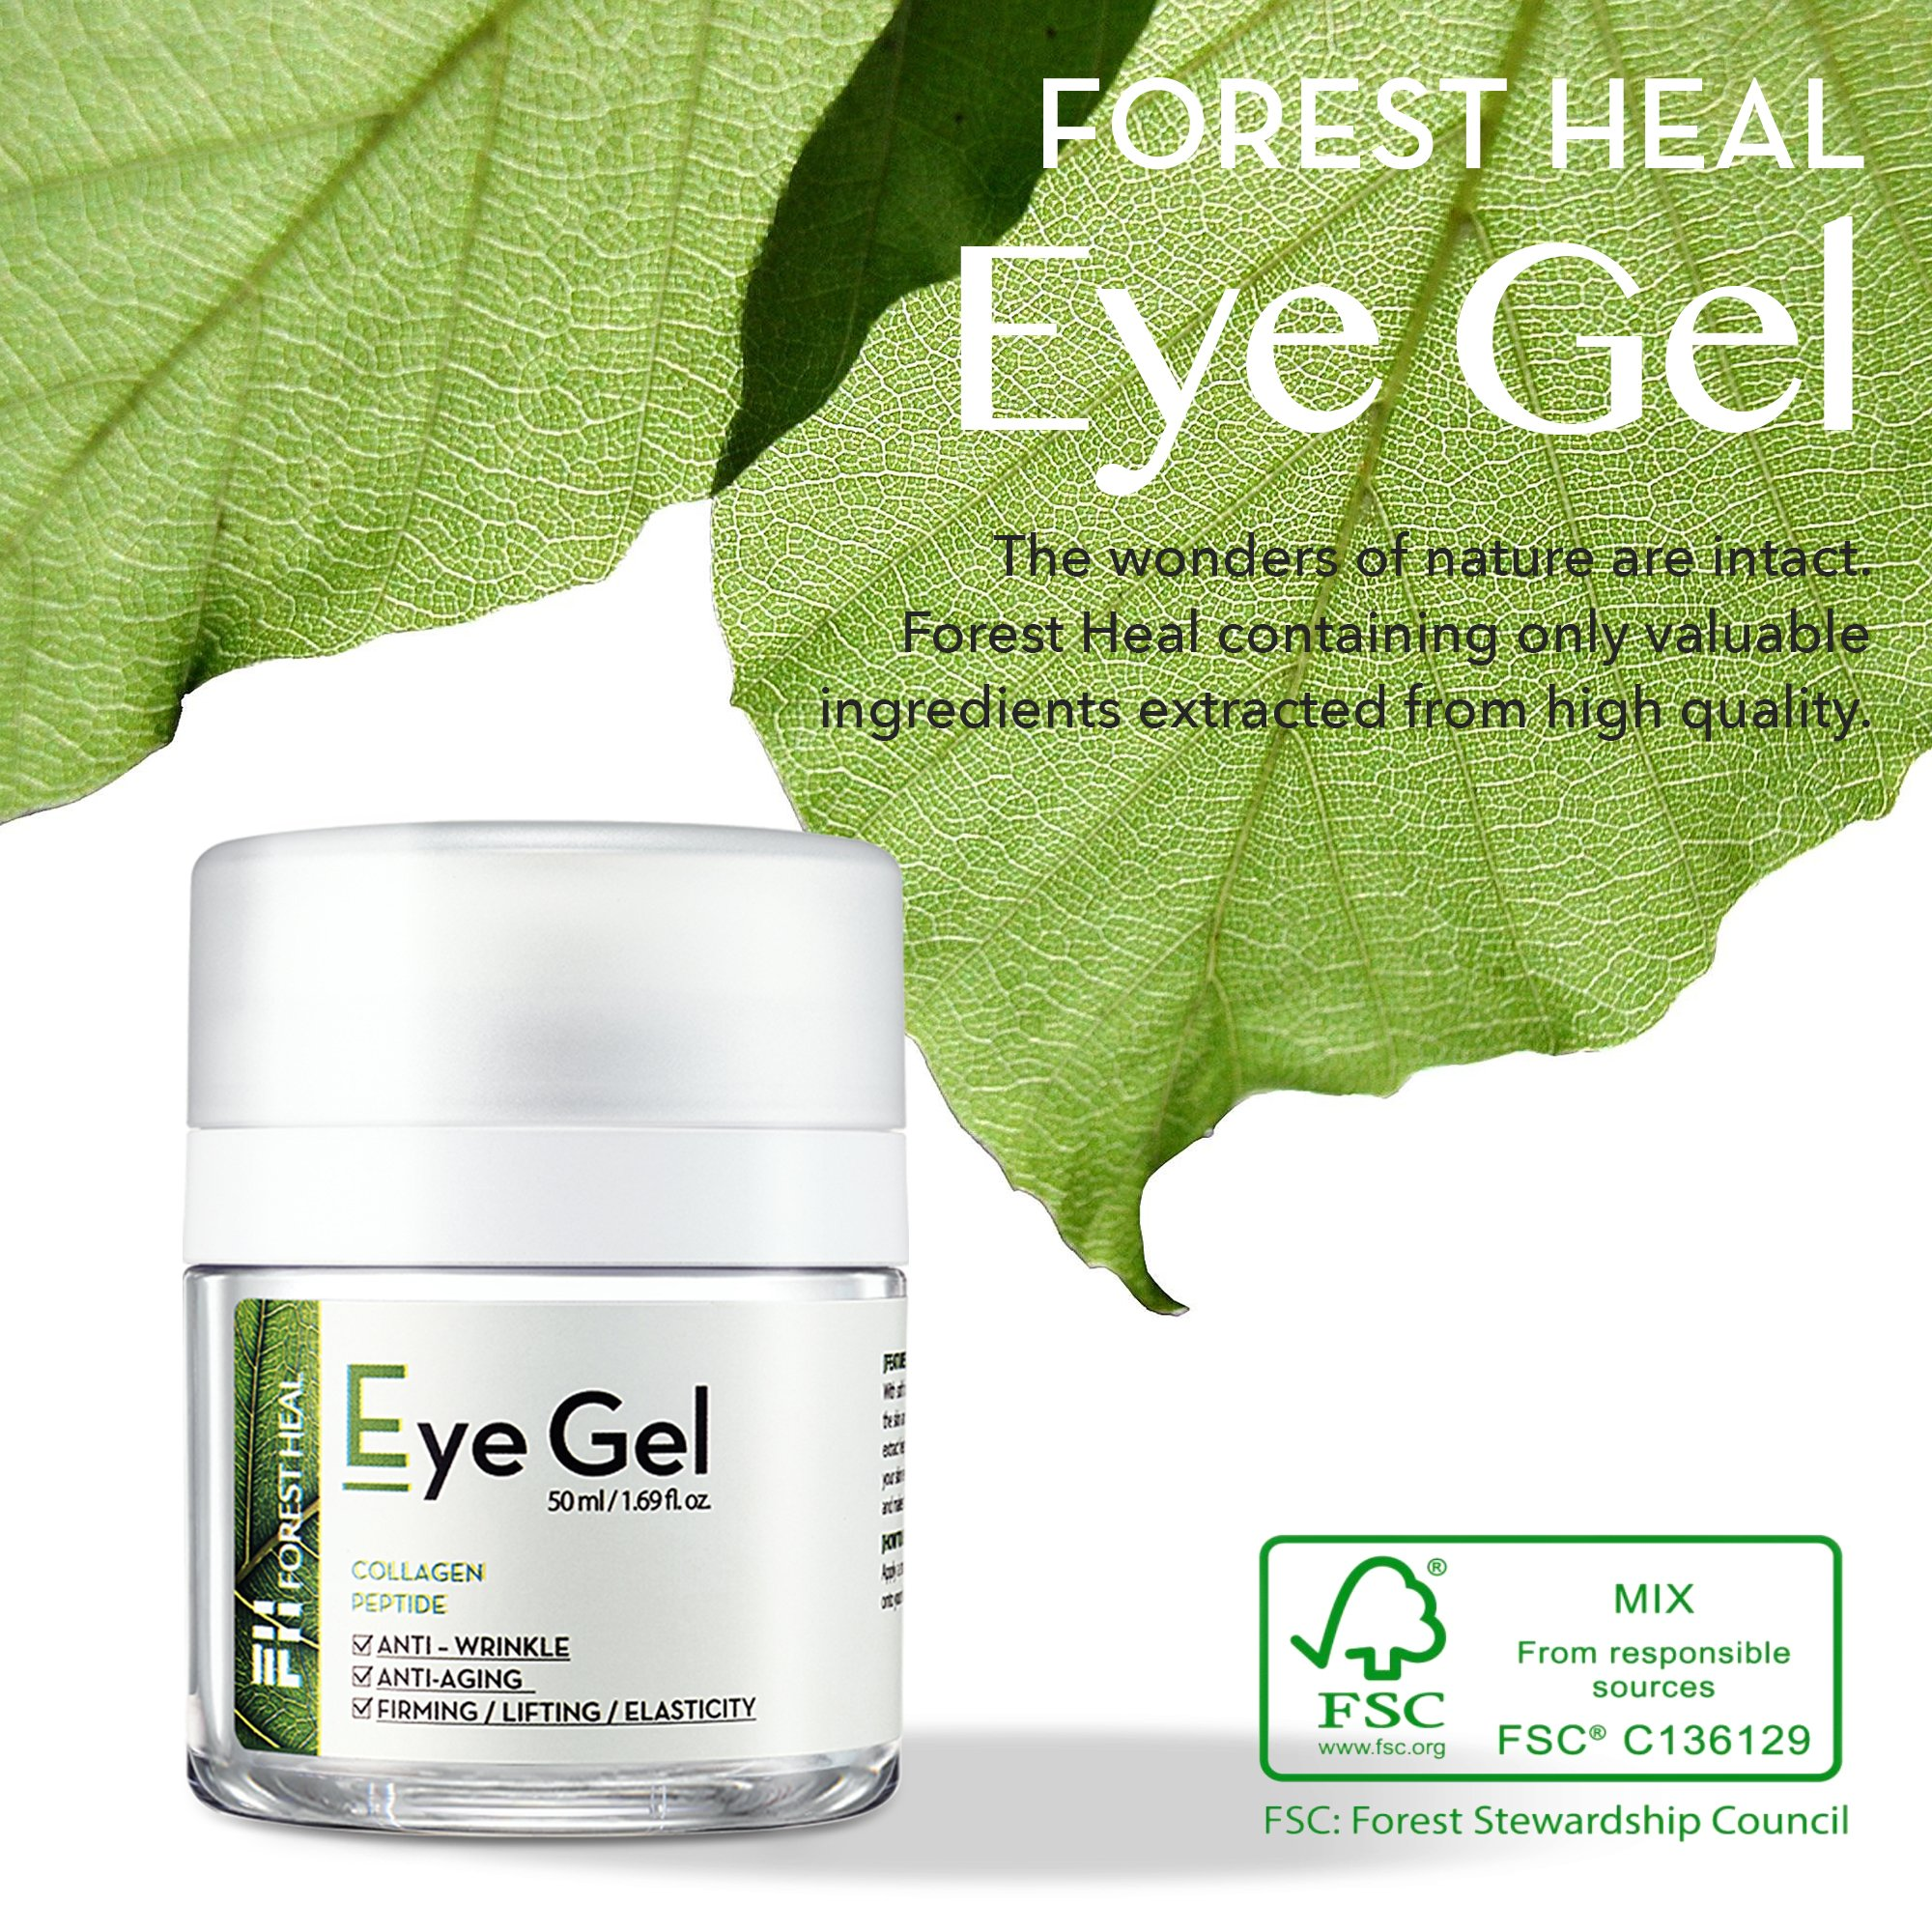 Forest Heal Eye Gel With Collagen Peptides and Niacinamide - Natural Anti Aging, Anti Wrinkle Moisturizer For Under and Around Eyes - 1.69 fl.oz. by Forest Heal (Image #6)